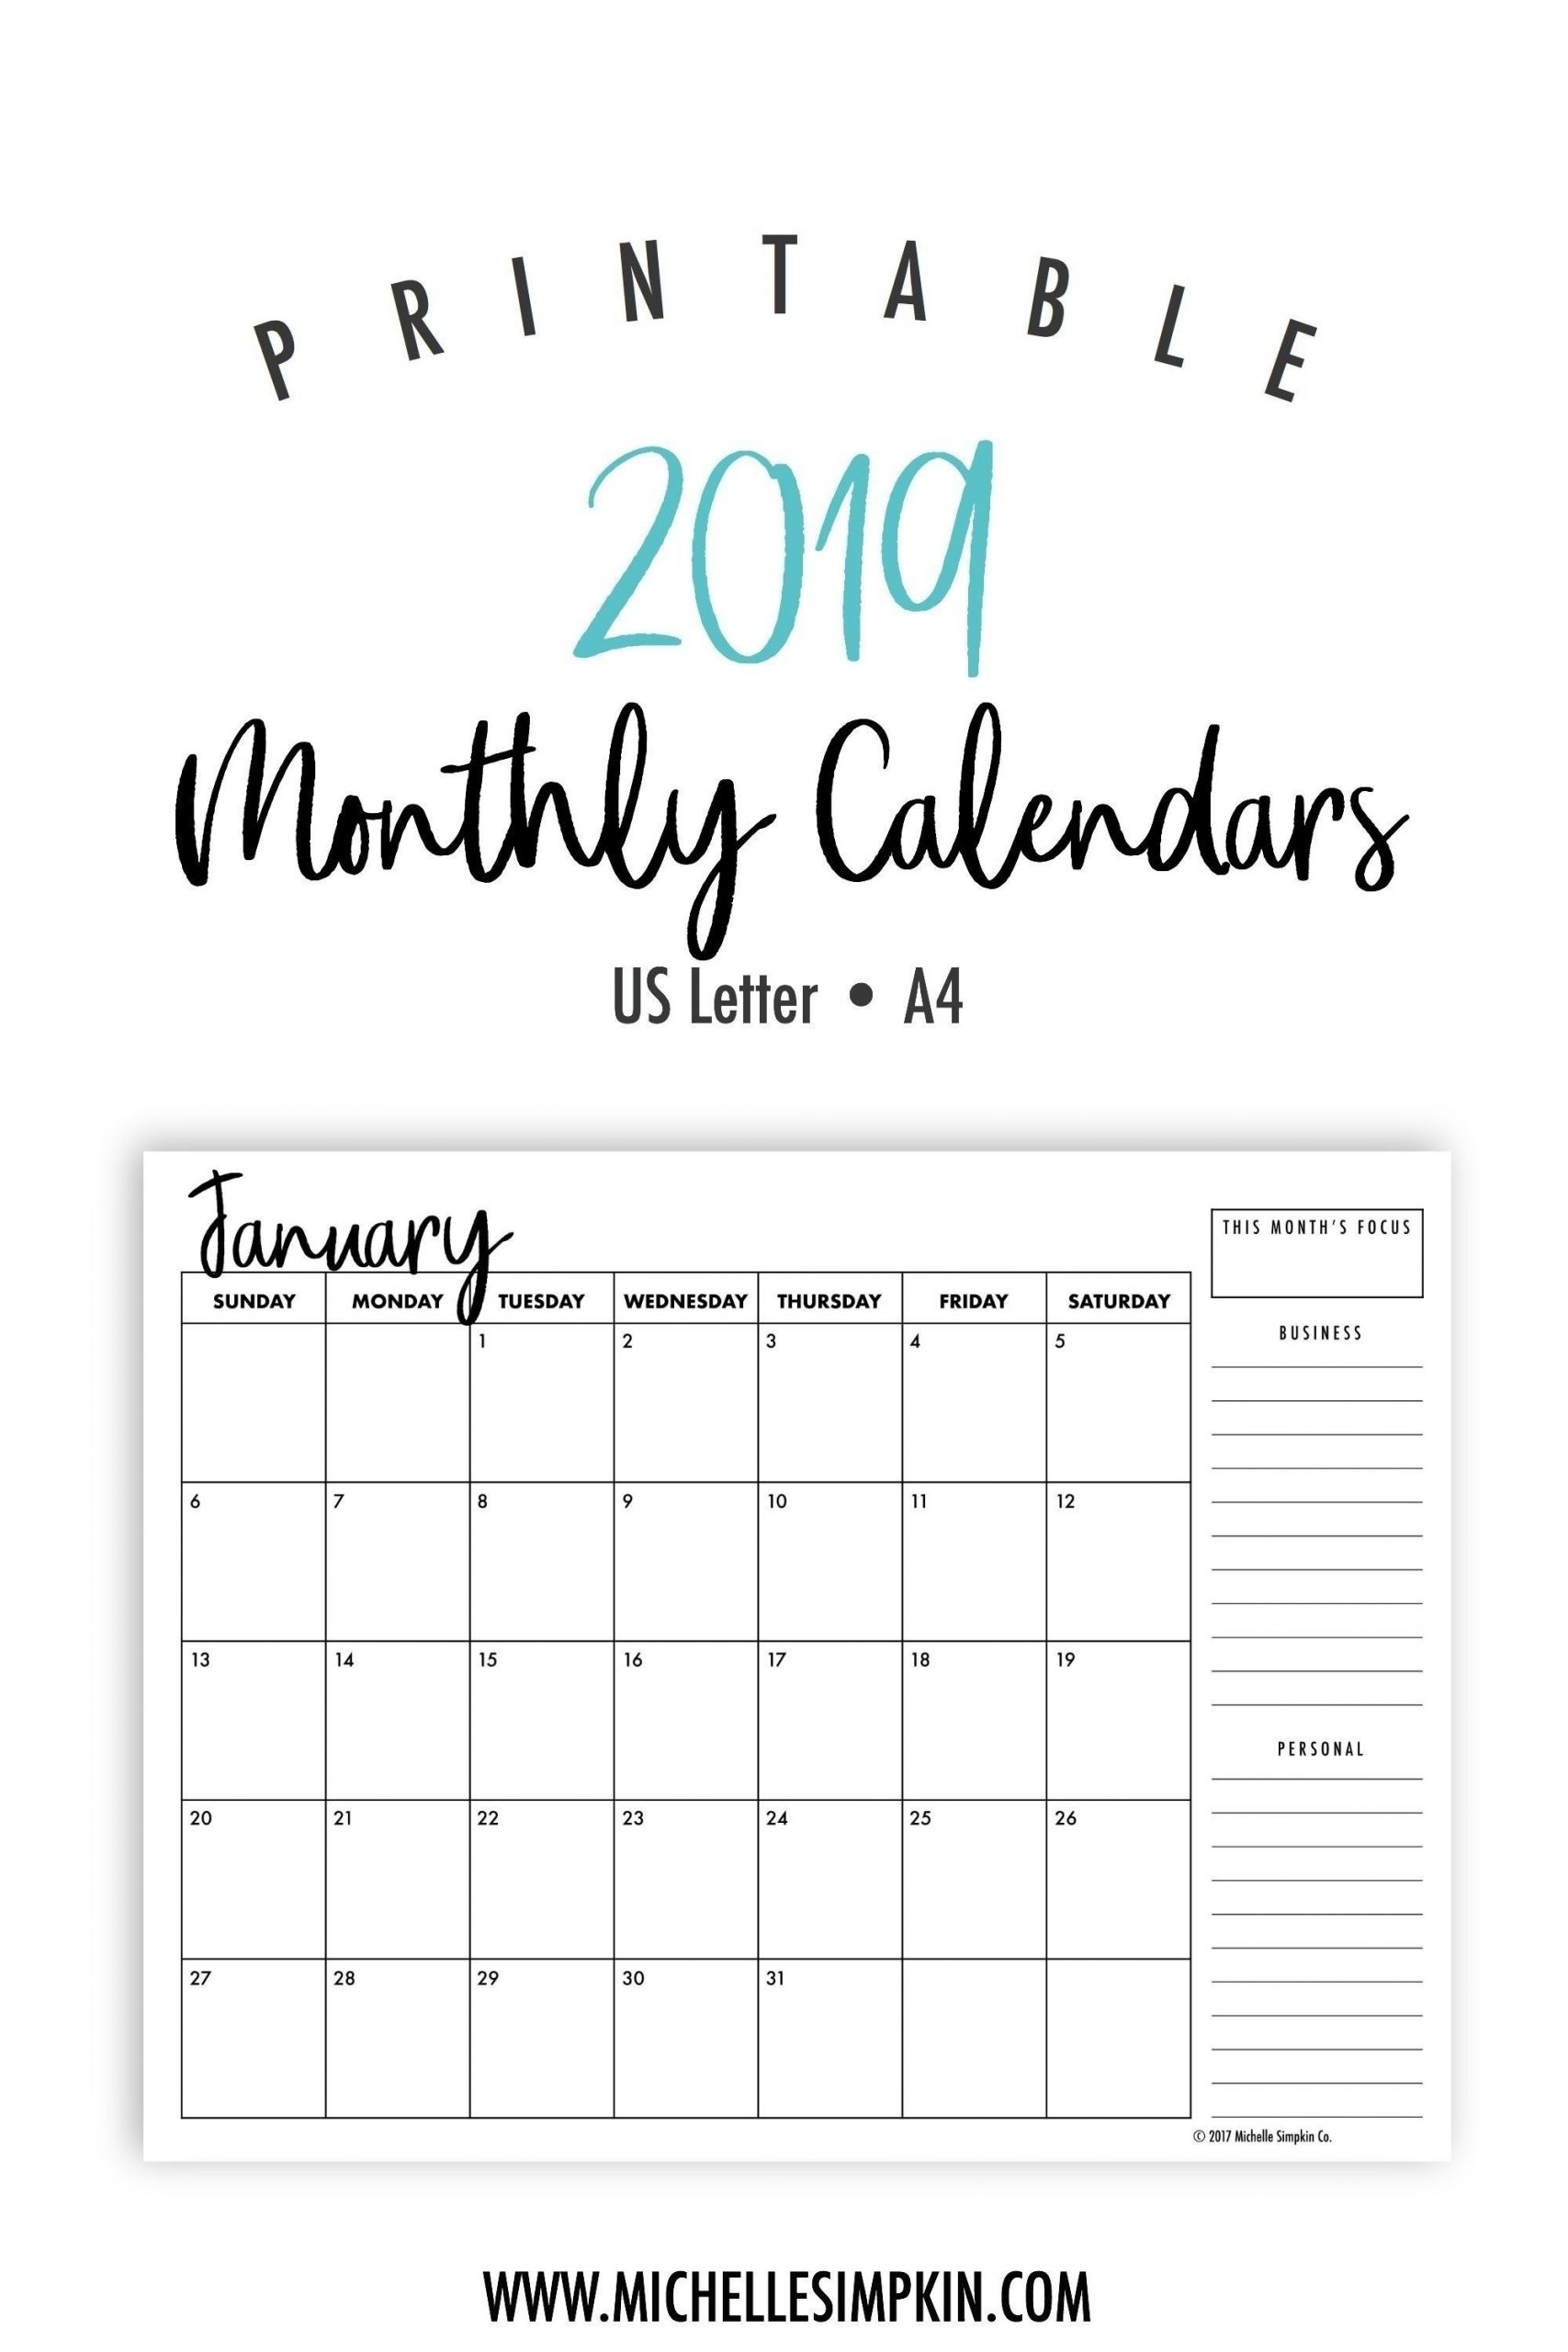 Free Printable Calendar Waterproof In 2020 | Monthly